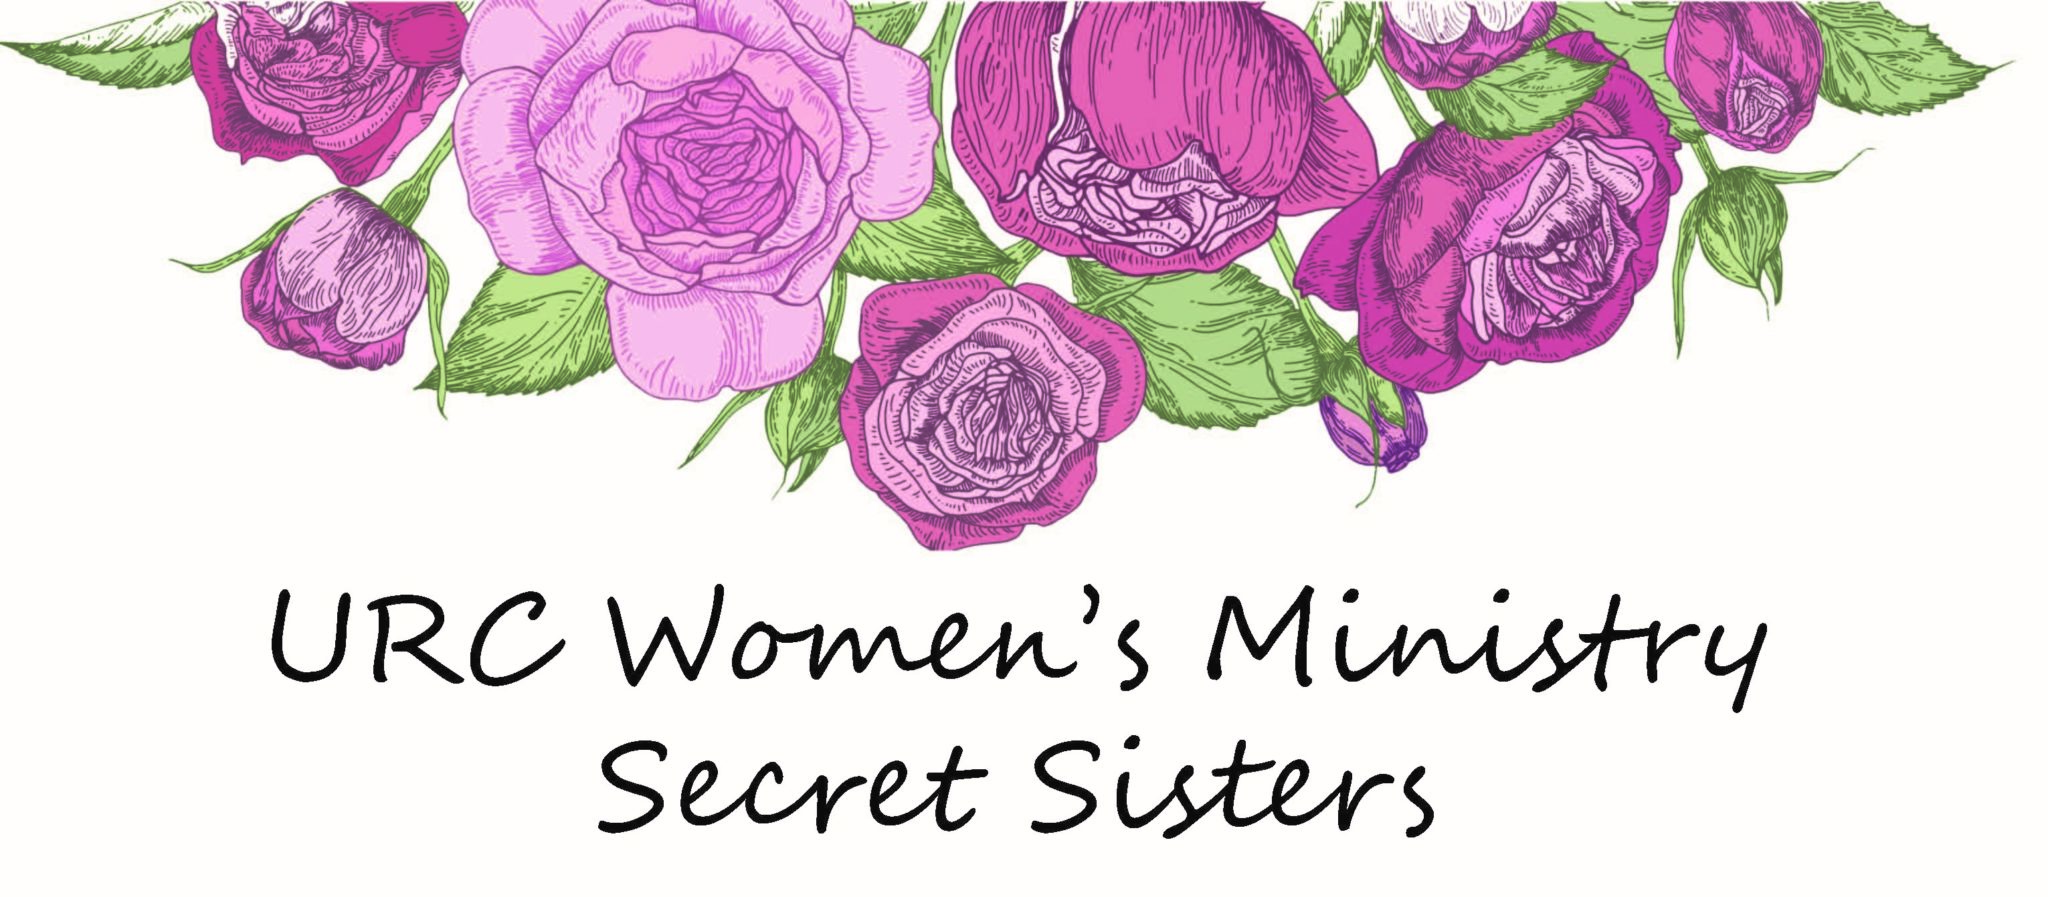 Secret Sisters_with floral